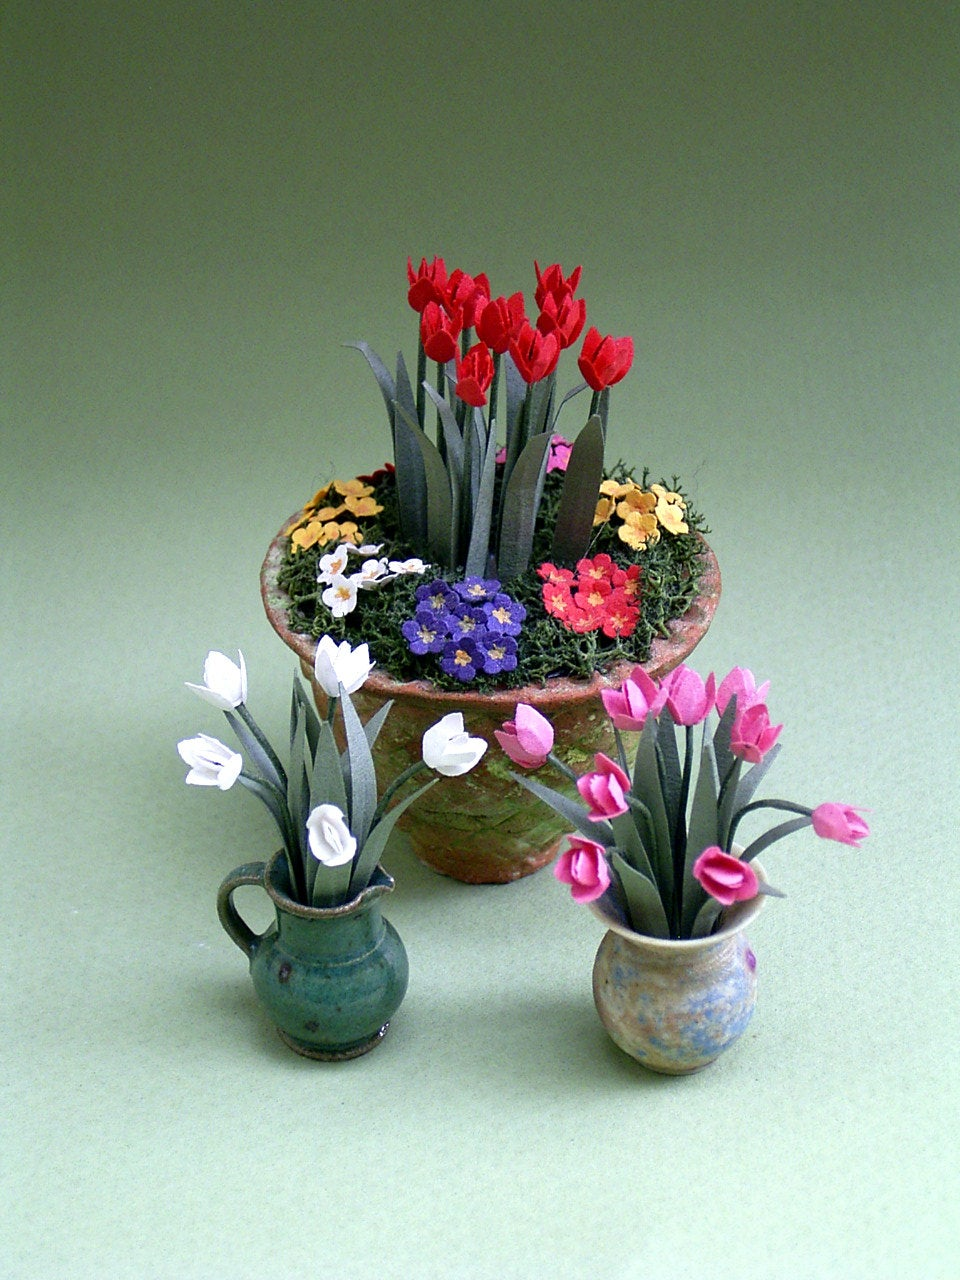 Tulips Paper Flower Kit  for 1/12th scale Dollhouses, Florists and Miniature Gardens